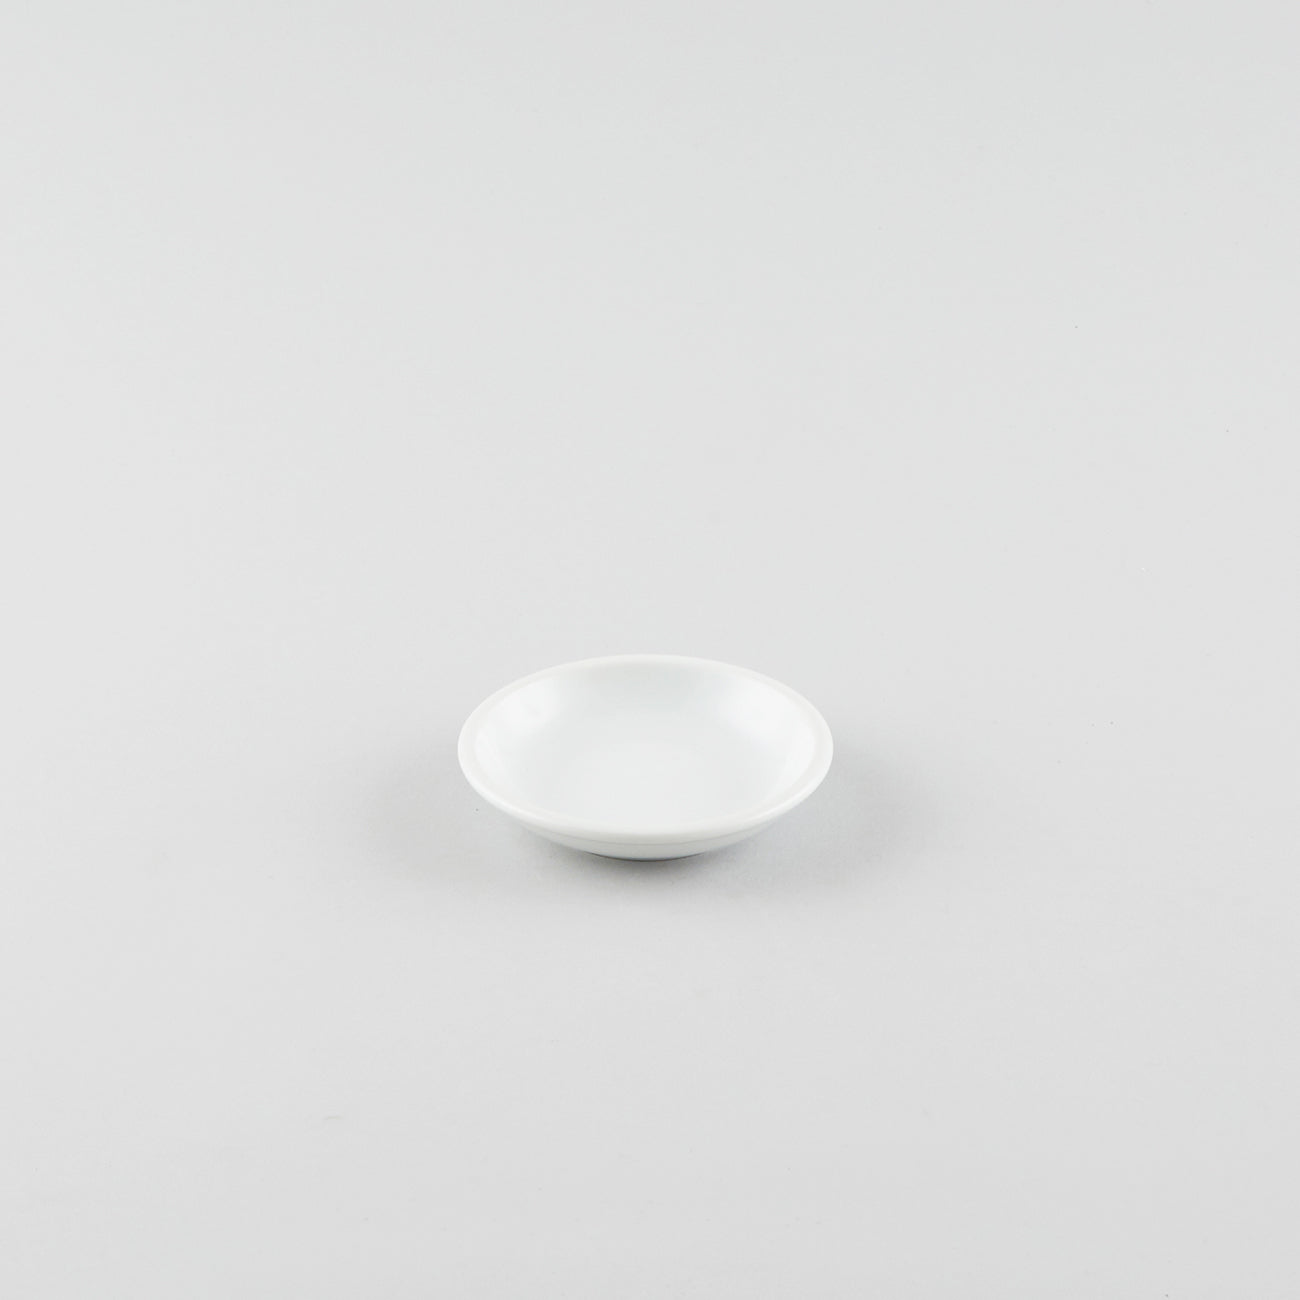 Round Soy Sauce Dish - White (L)